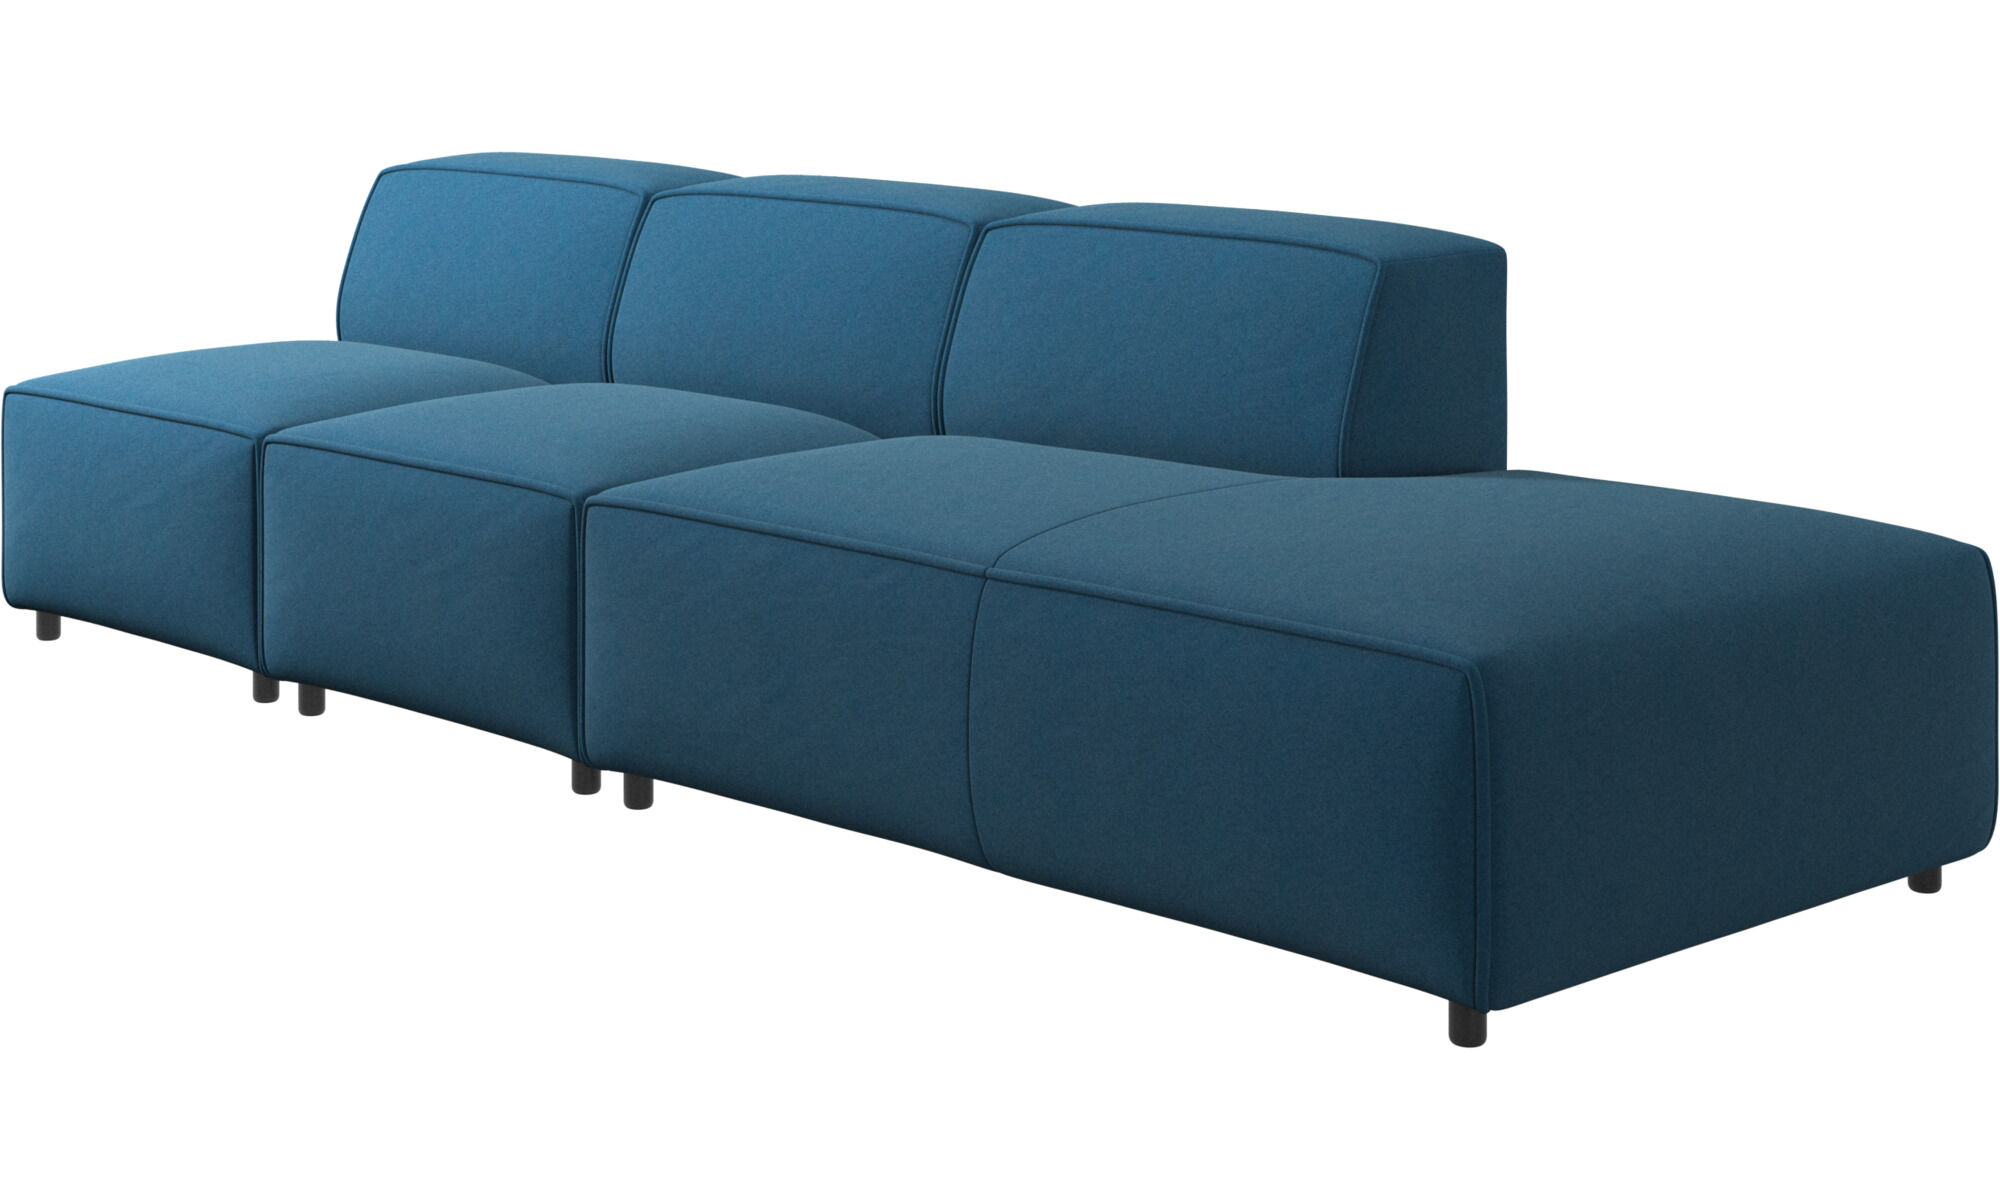 Merveilleux ... Sofas With Open End   Carmo Sofa With Lounging Unit   Blue   Fabric ...